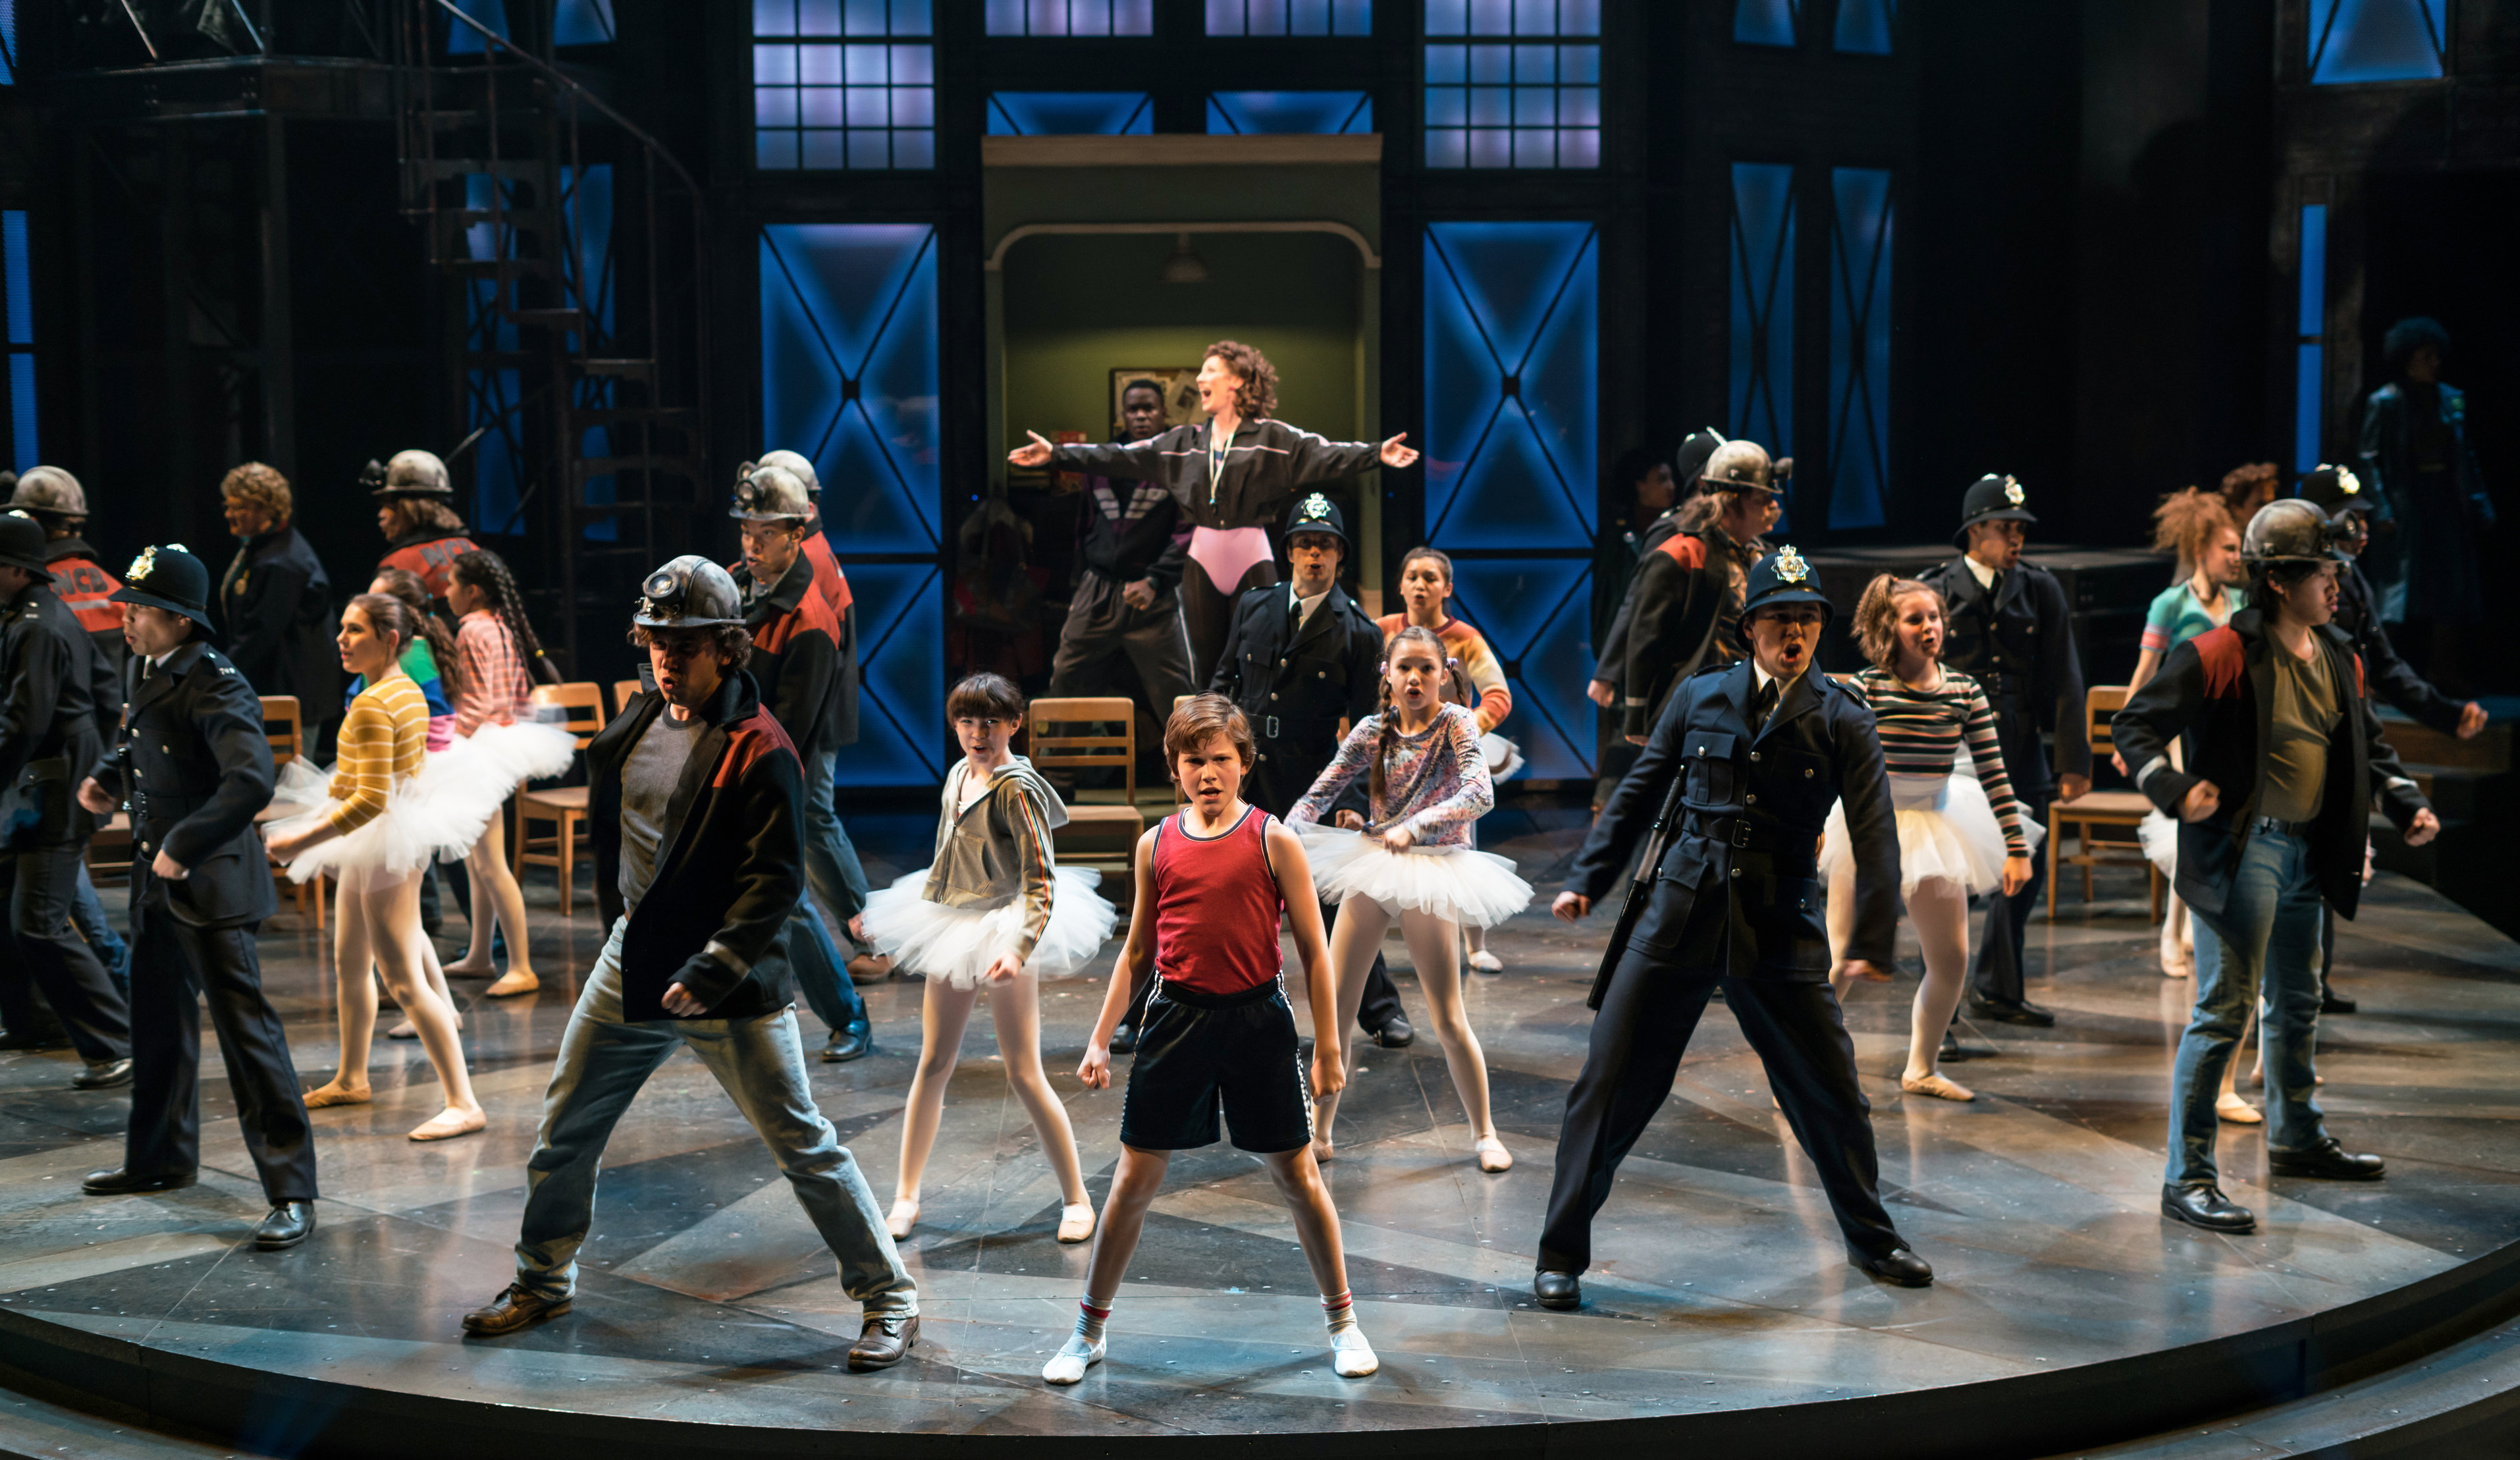 Billy Elliot the Musical – On The Run 2019